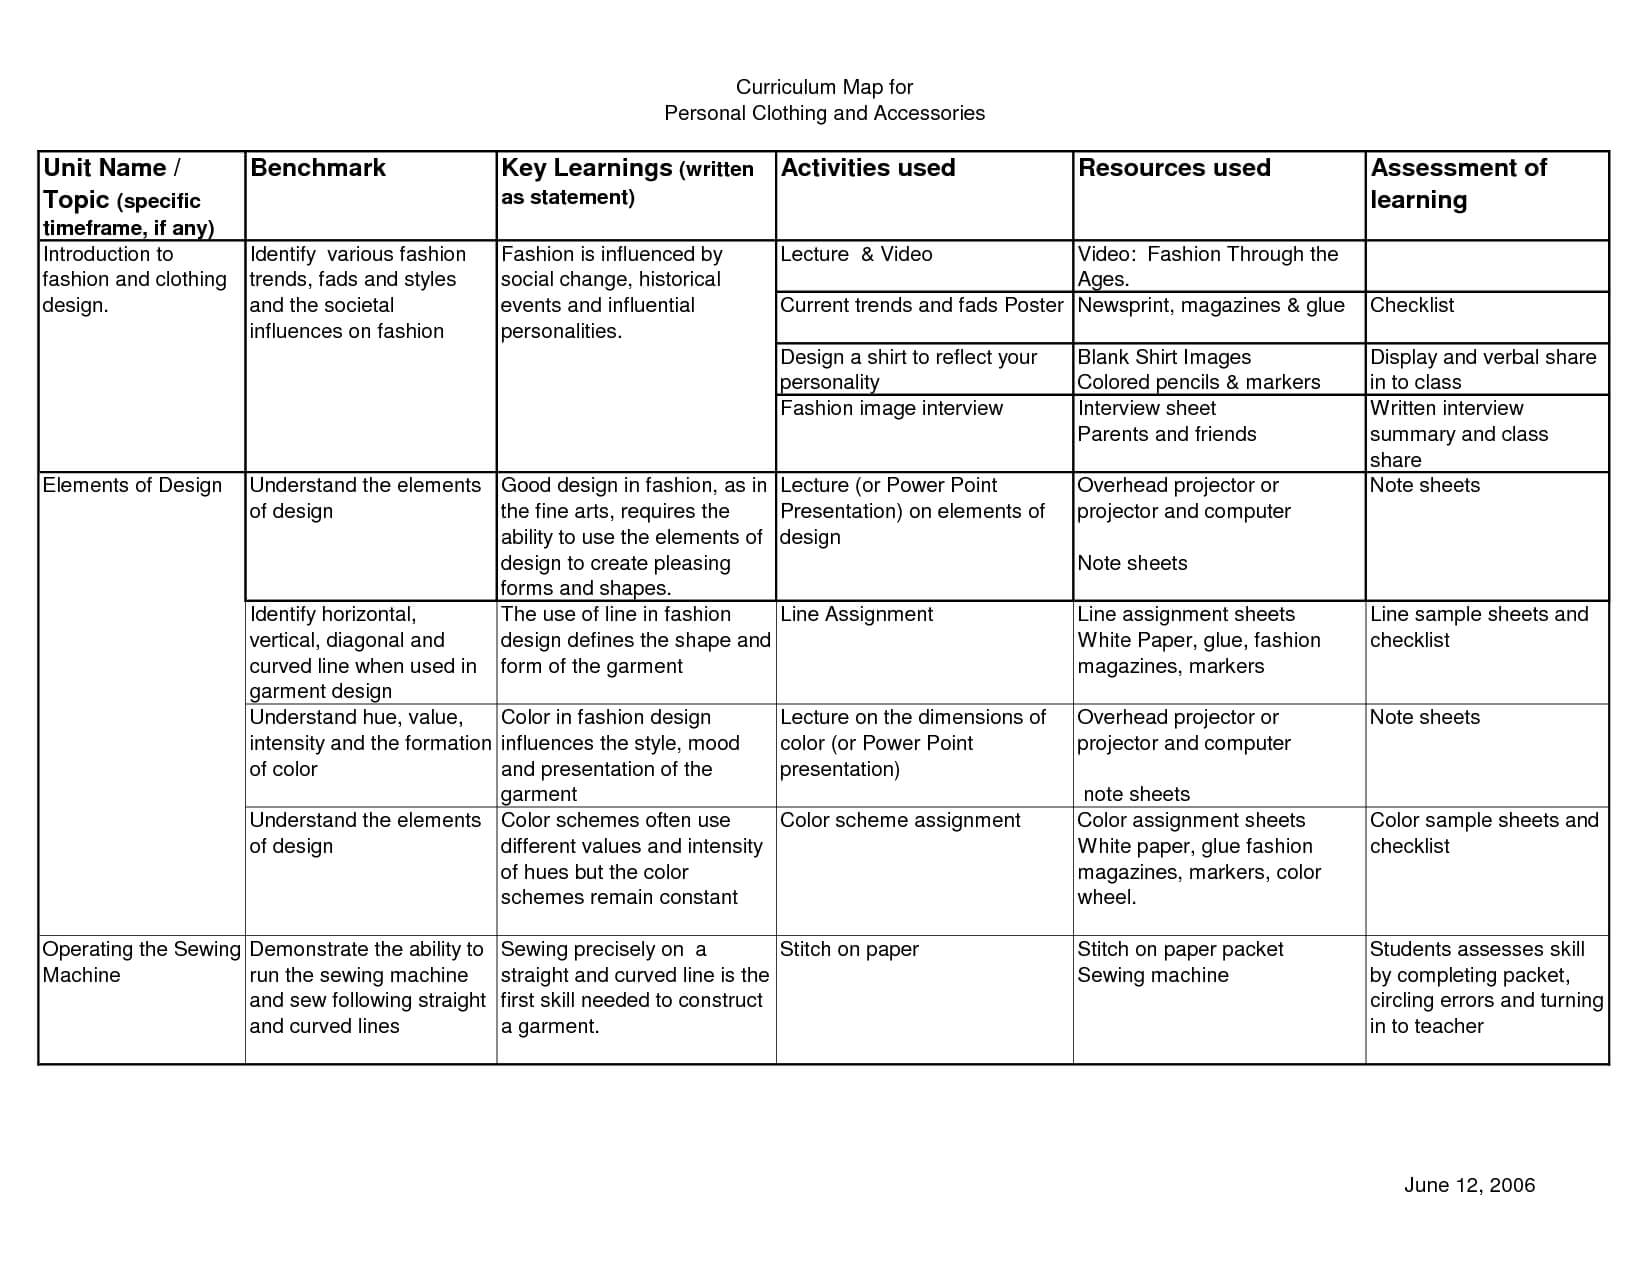 Blank Curriculum Map Template | Blank Color Wheel Worksheets Throughout Blank Curriculum Map Template